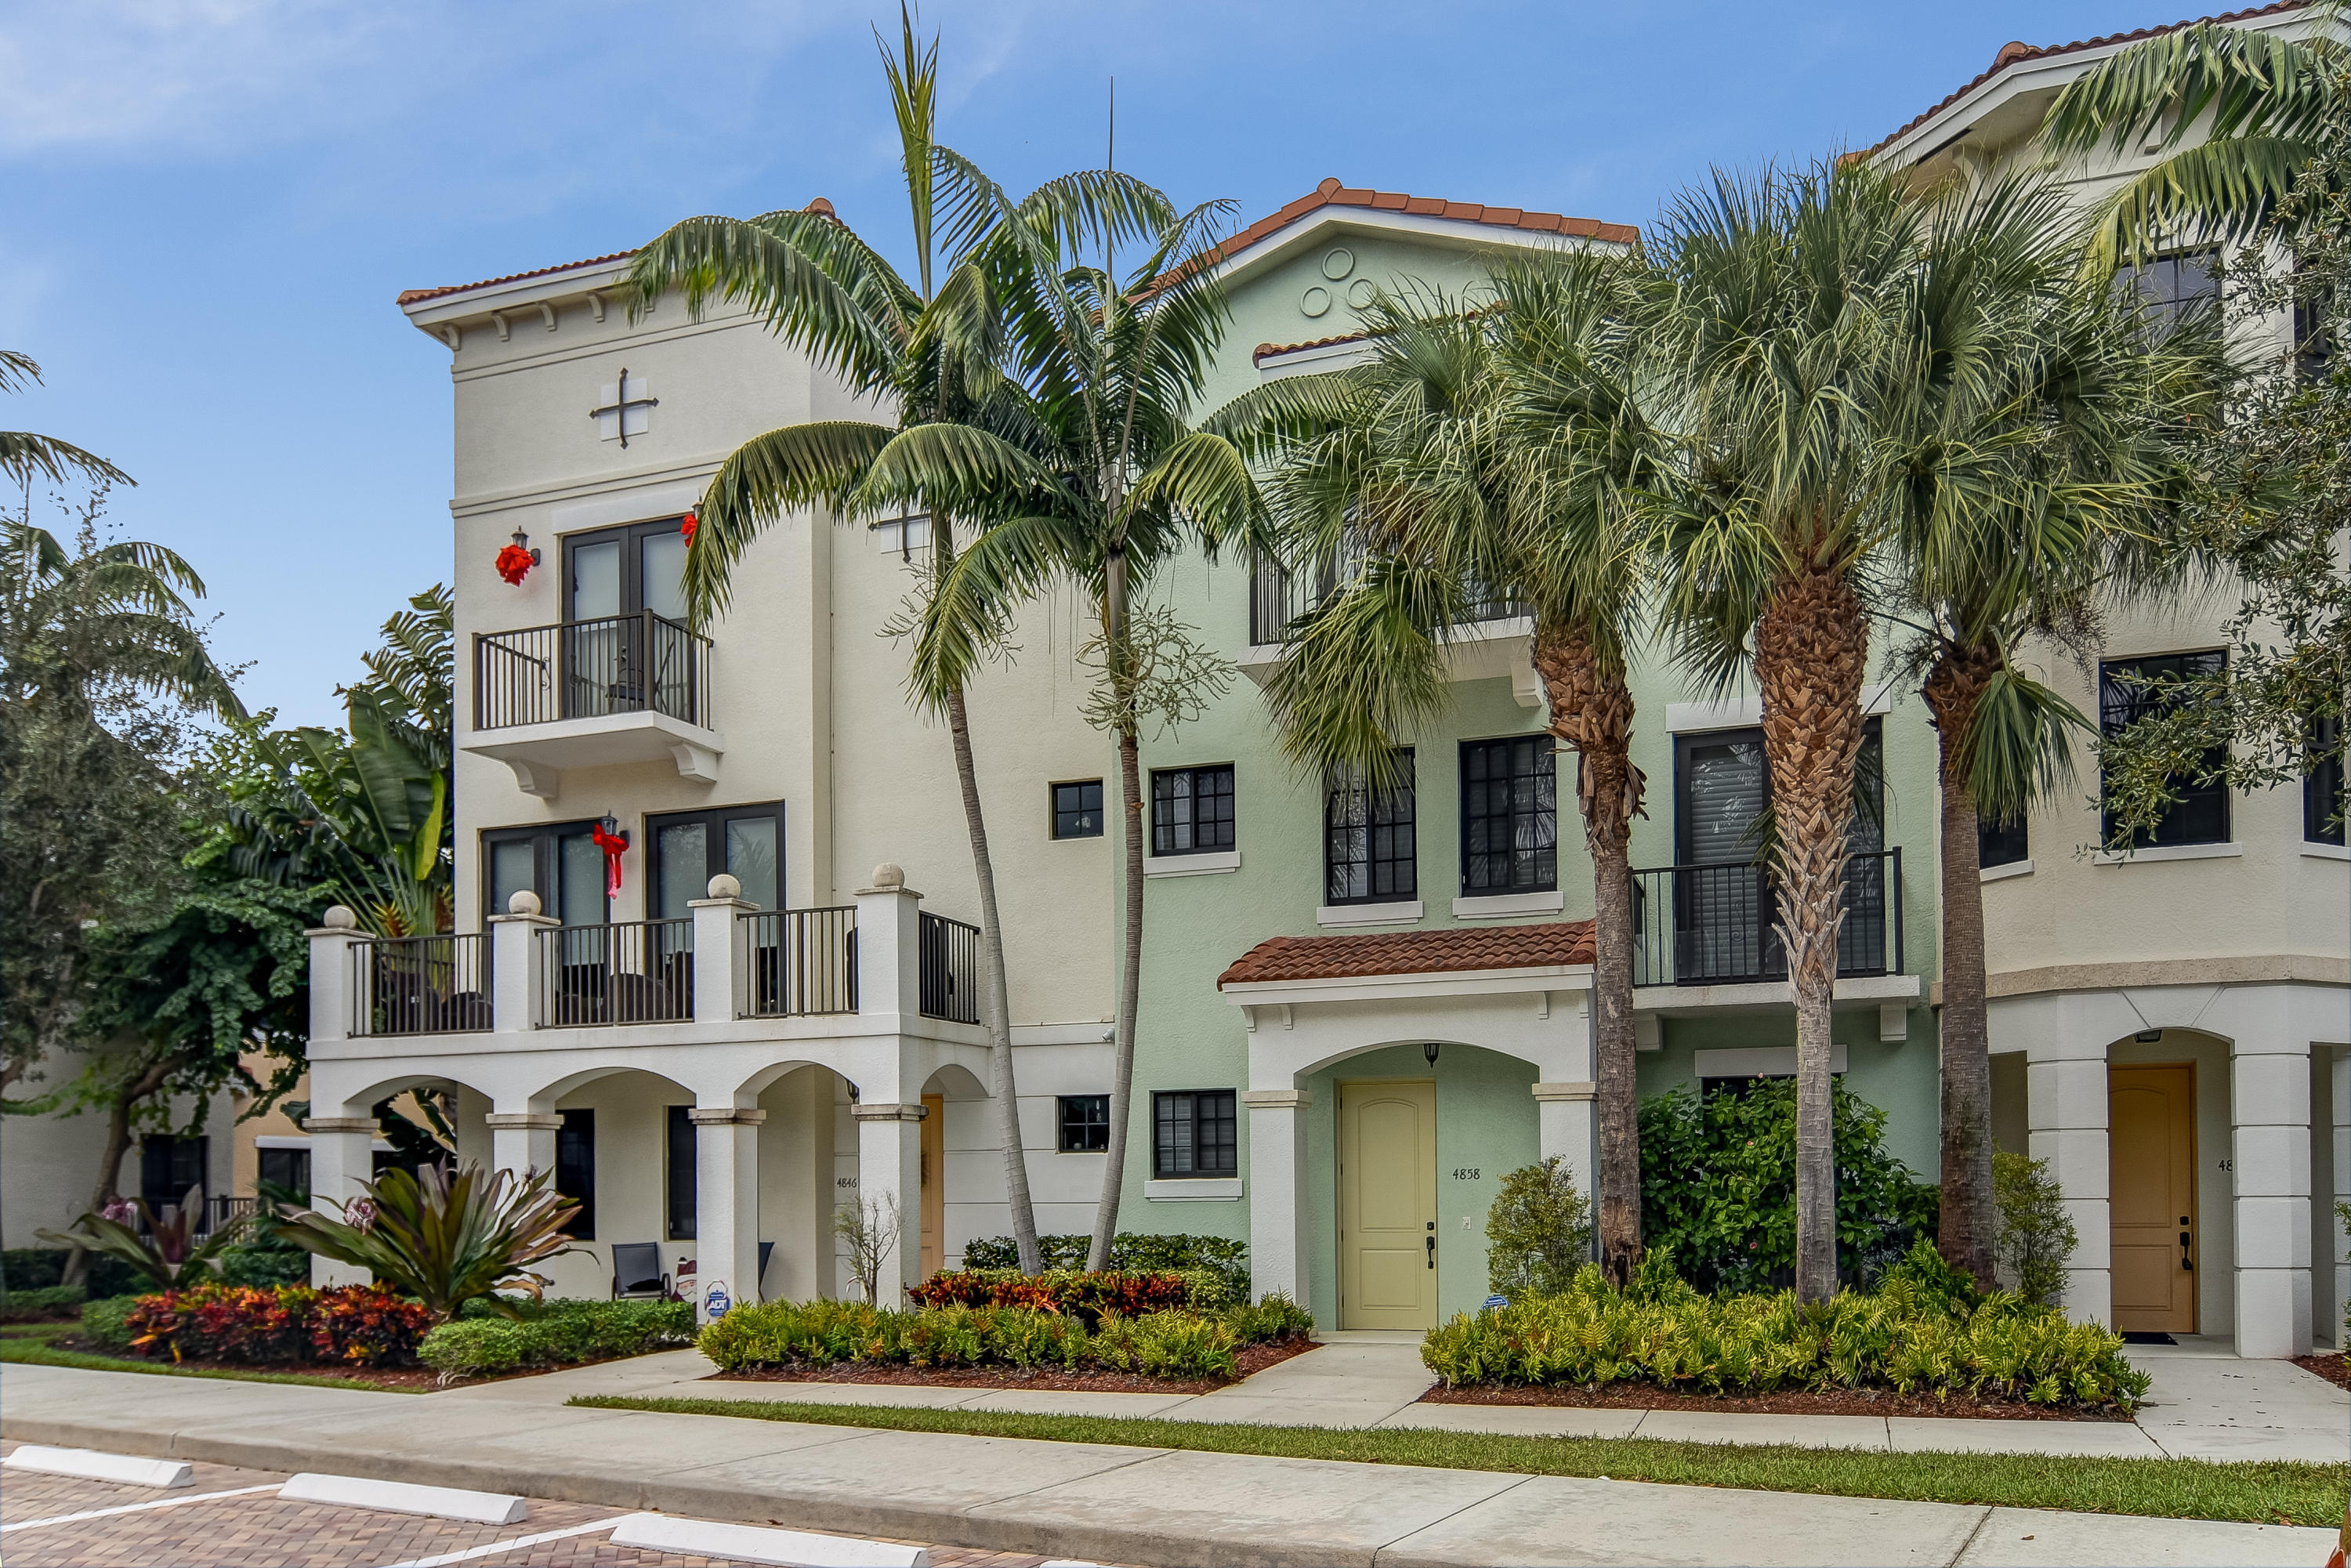 4858 16 Avenue, Boca Raton, Florida 33431, 3 Bedrooms Bedrooms, ,3 BathroomsBathrooms,Townhouse,For Sale,CENTRA Blue Lake Townhomes,16,RX-10485643